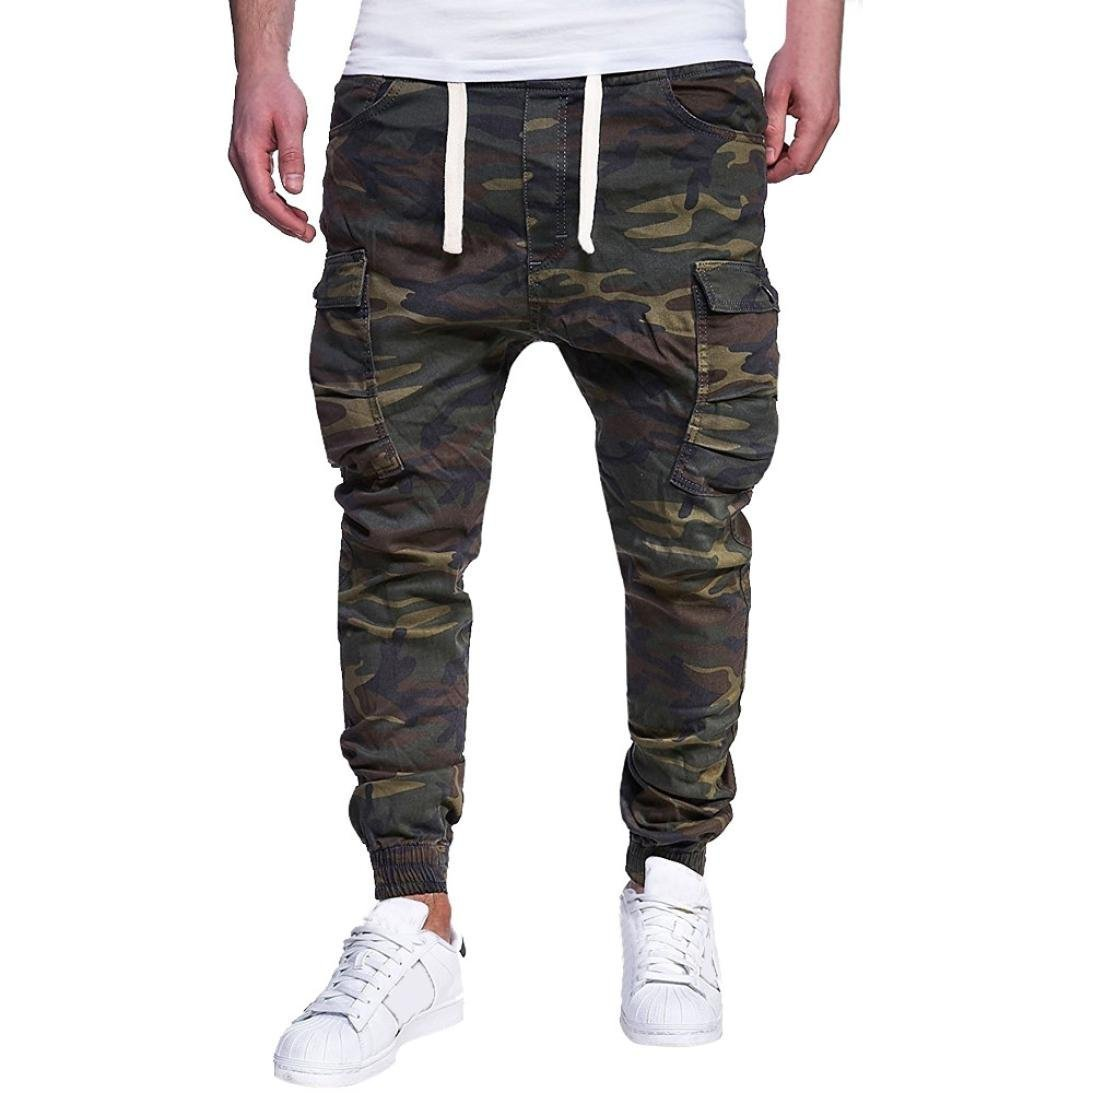 HTHJSCO Men's Slim Fit Cotton Twill Chino Jogger Pants, Men's Sport Camouflage Lashing Belts Casual Loose Sweatpants (Army Green, XL)